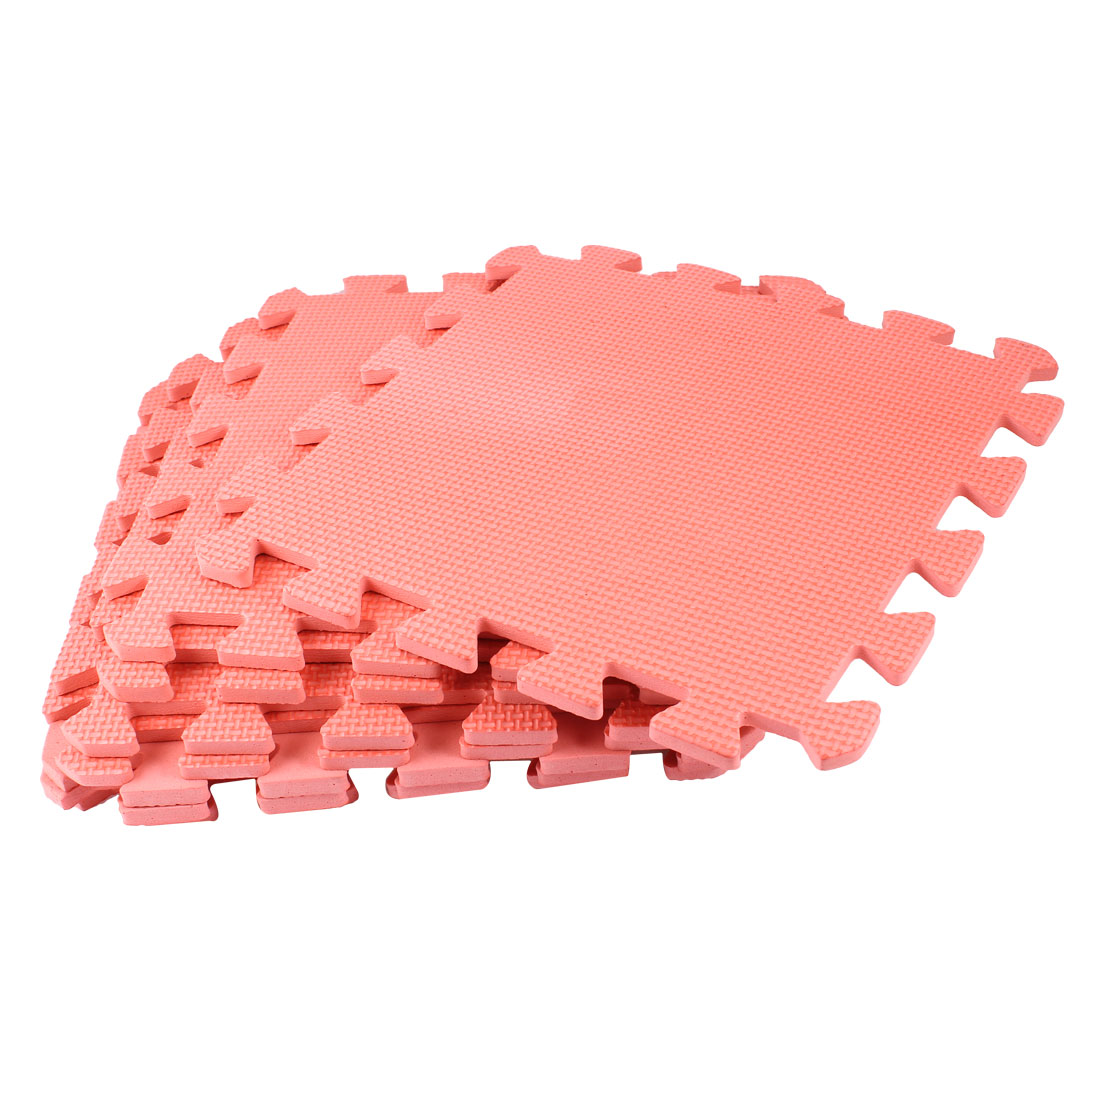 9PCS Interlocking Gym Exercise Foam Floor Tiles Large Mats Watermelon Red